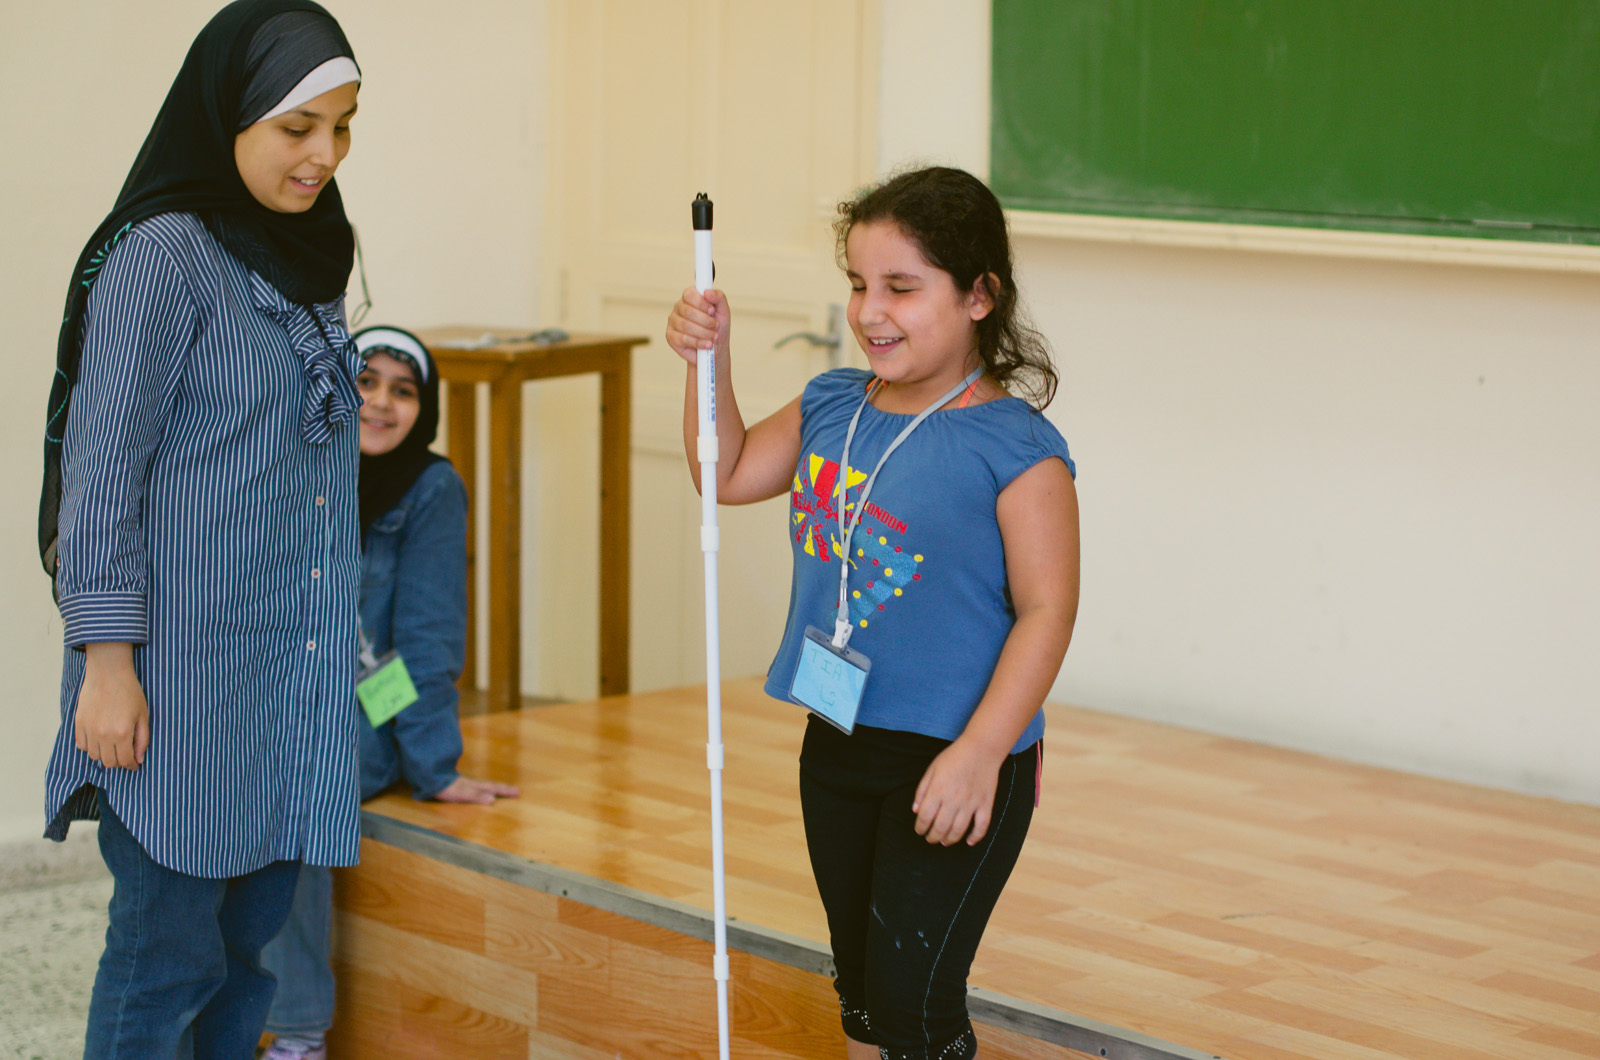 Sara Minkara (left) supervises a girl learning how to use a white cane.